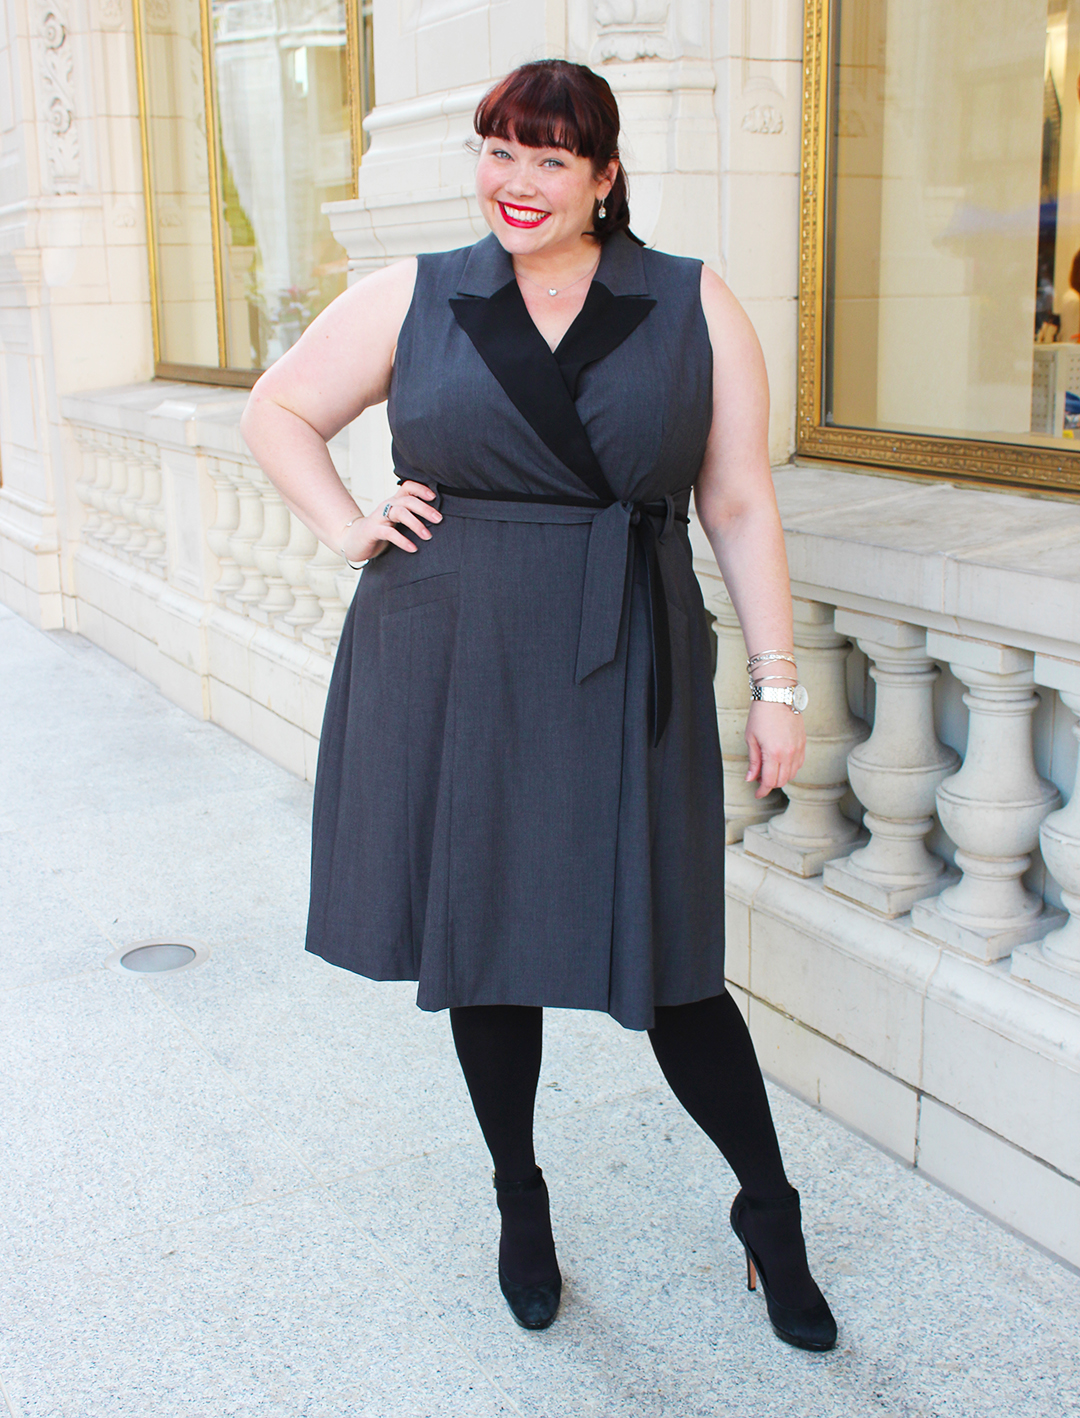 Chicago Plus Size Blogger Amber from Style Plus Curves in a Sleeveless Suit Dress with Hanes Just My Size Blackout Tights, fall fashion, black tights